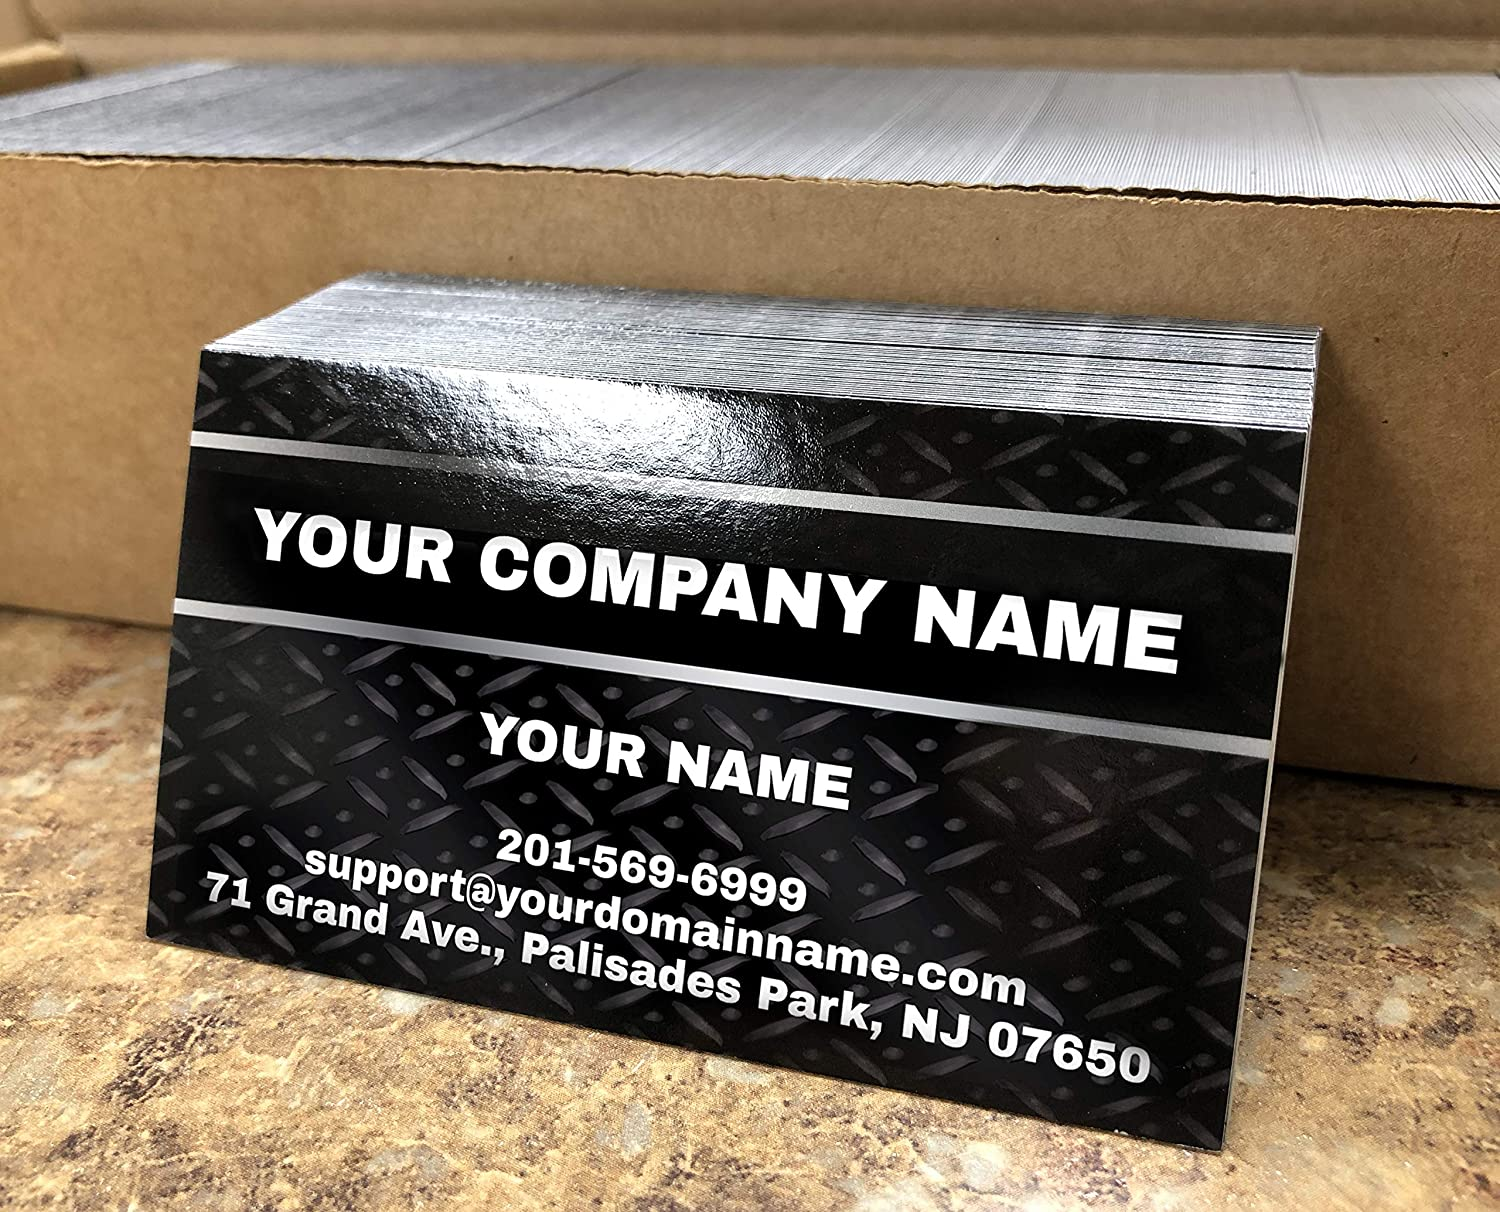 Custom Premium Business Cards 500 pcs Full color - Black Metal Panel, 16pt Cover Stock (129 lbs. 350gsm-Thick paper), UV coating-Front, Matte finishing-Back, Made in The USA